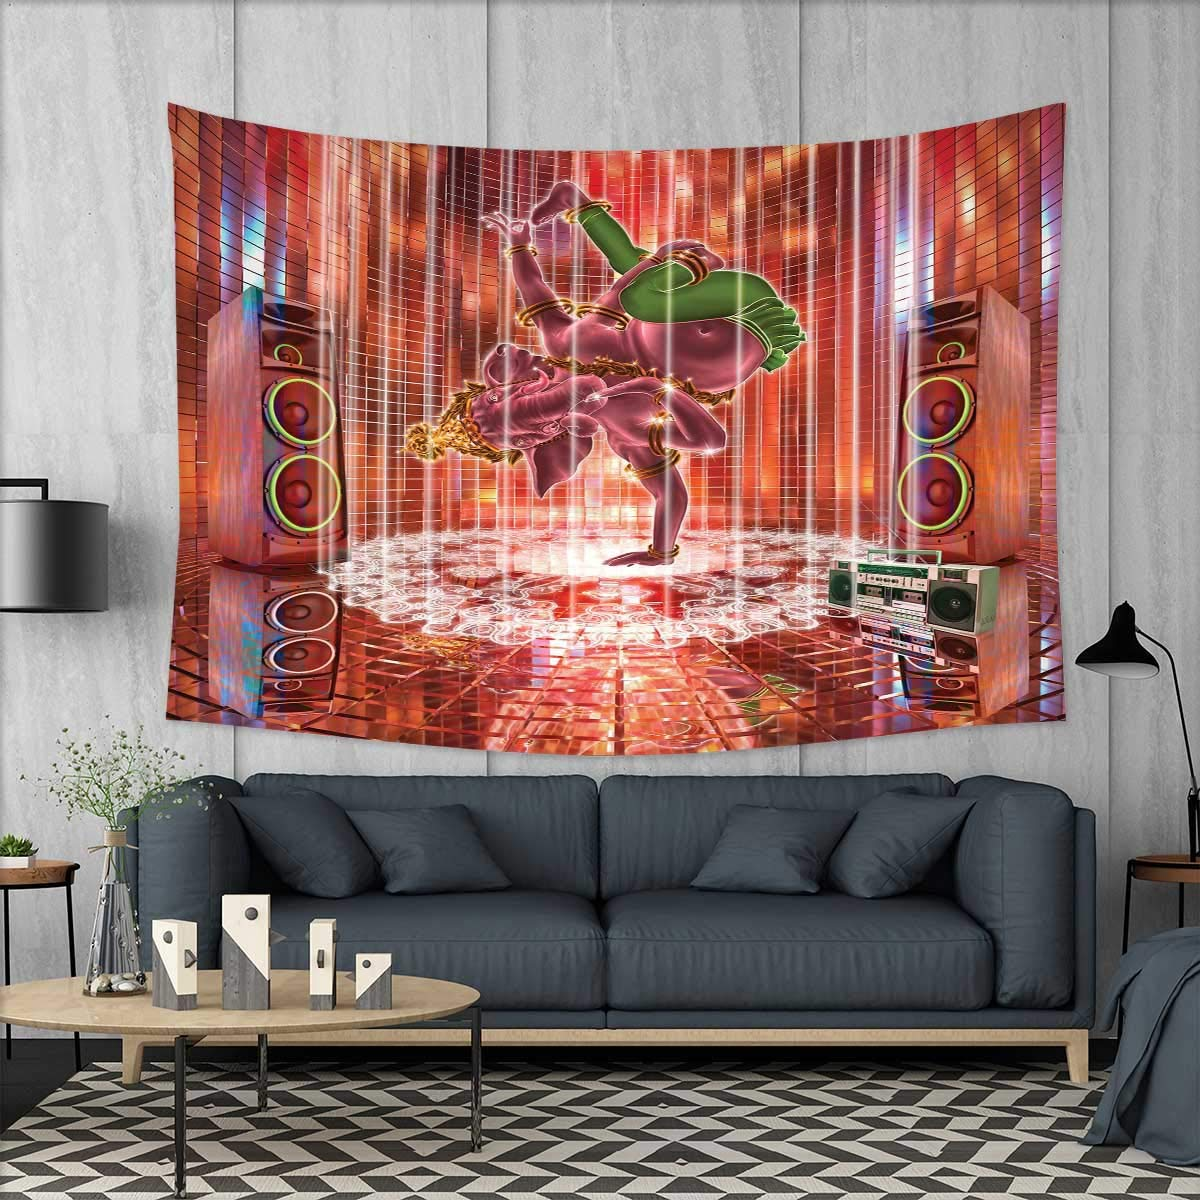 smallbeefly Animal Wall Hanging Tapestries Ethnic Elephant Dancing Rocking The Dance Floor with its Meditating Moves Print Large tablecloths 84''x54'' Multicolor